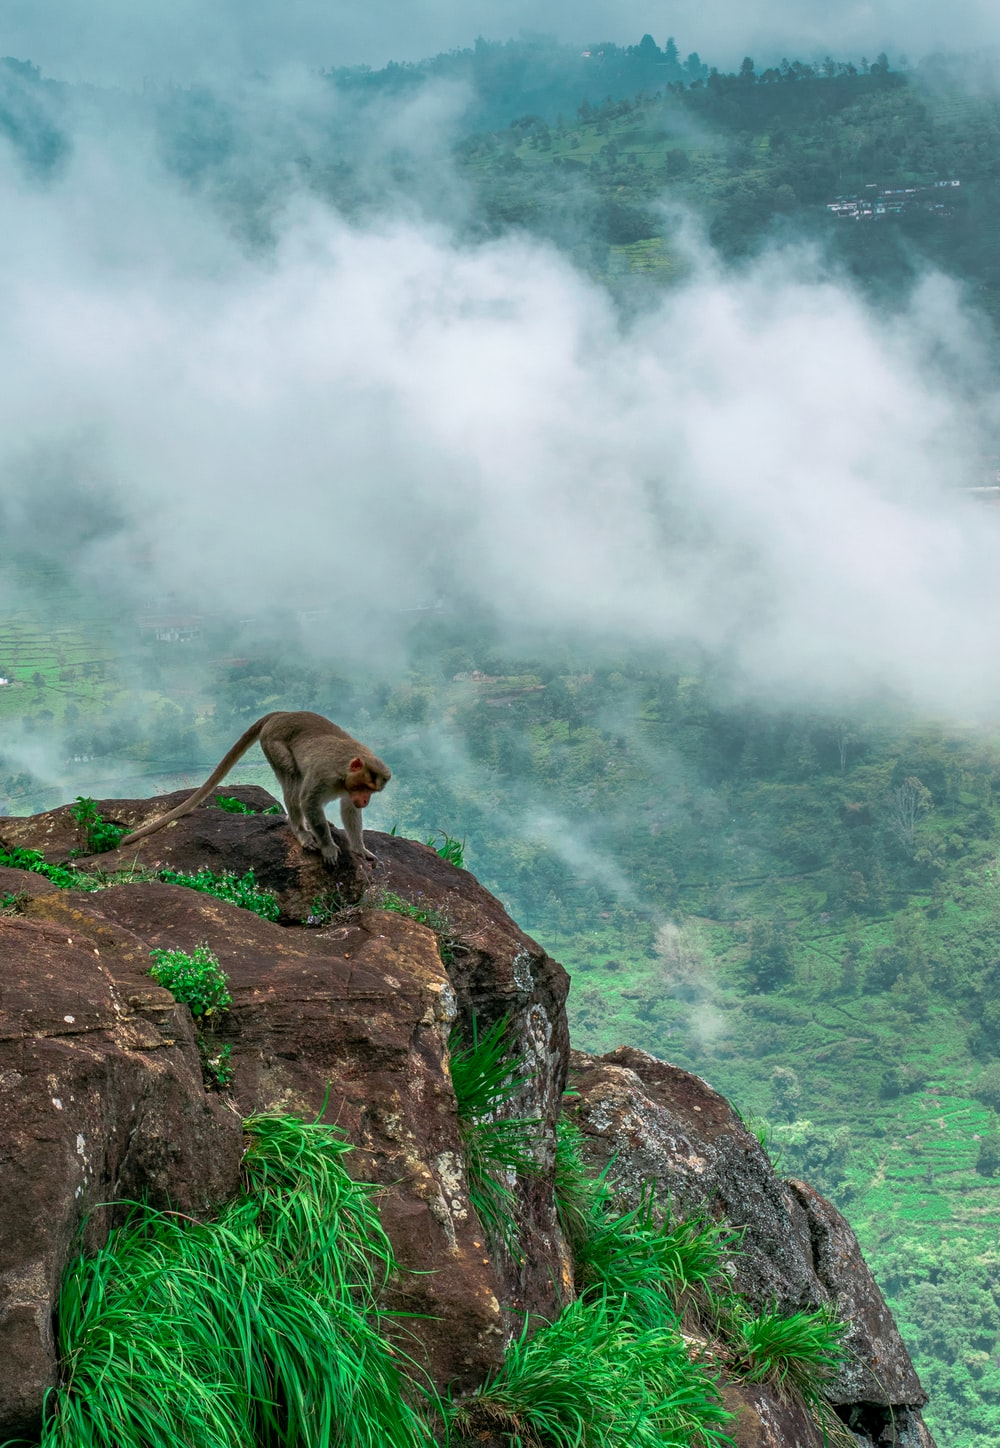 gray monkey on rock formations during daytime